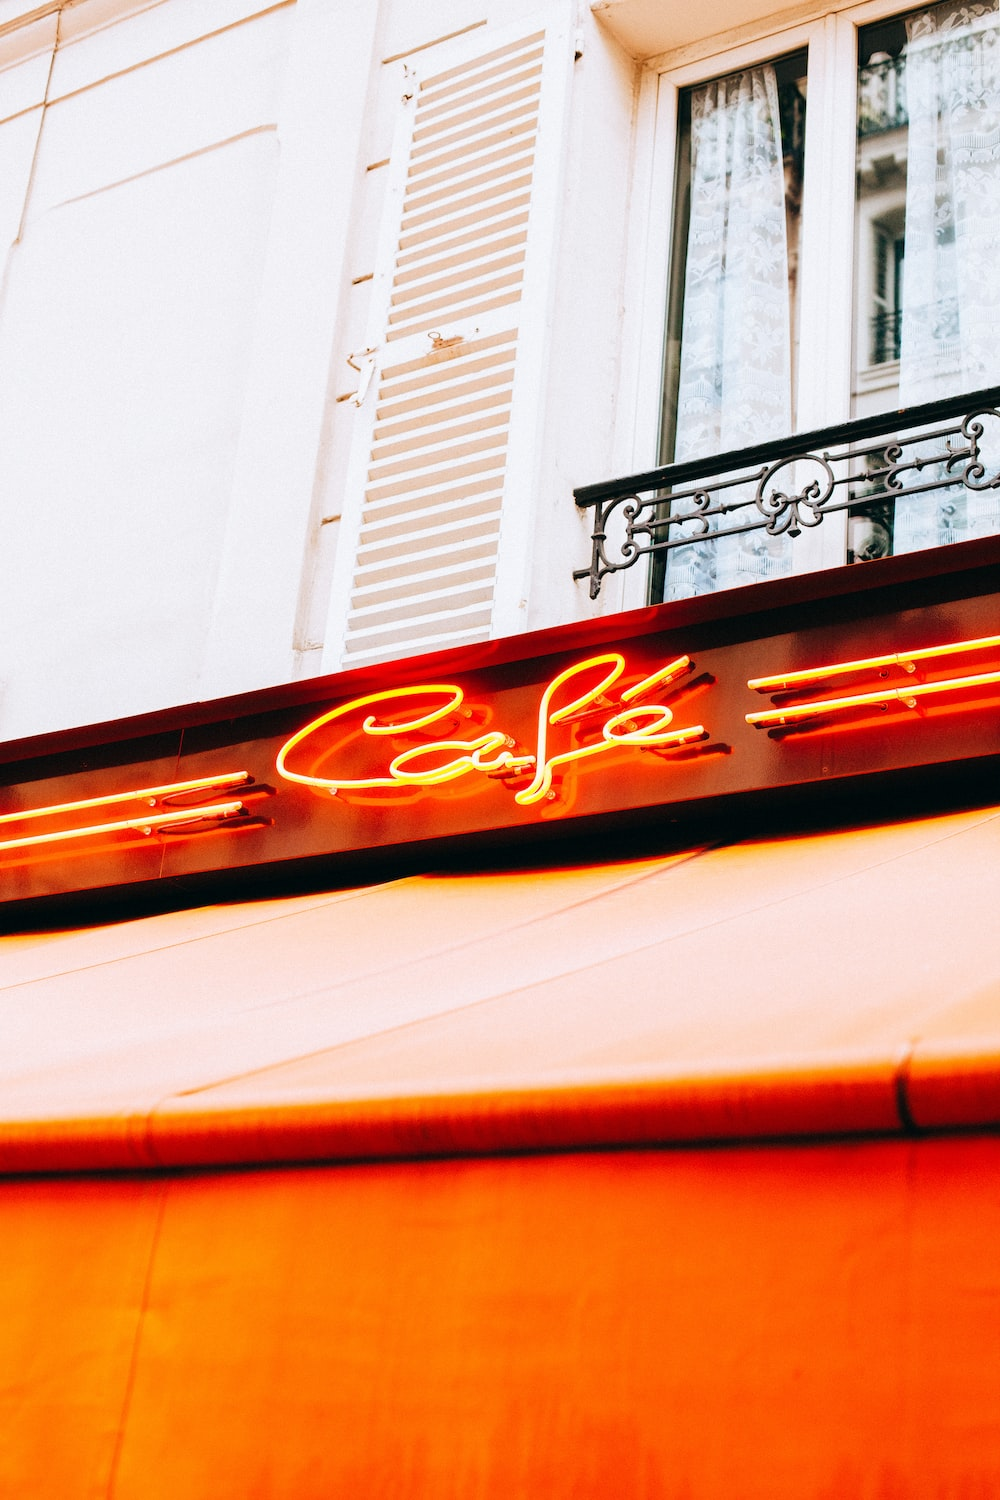 Cafe neon light signage